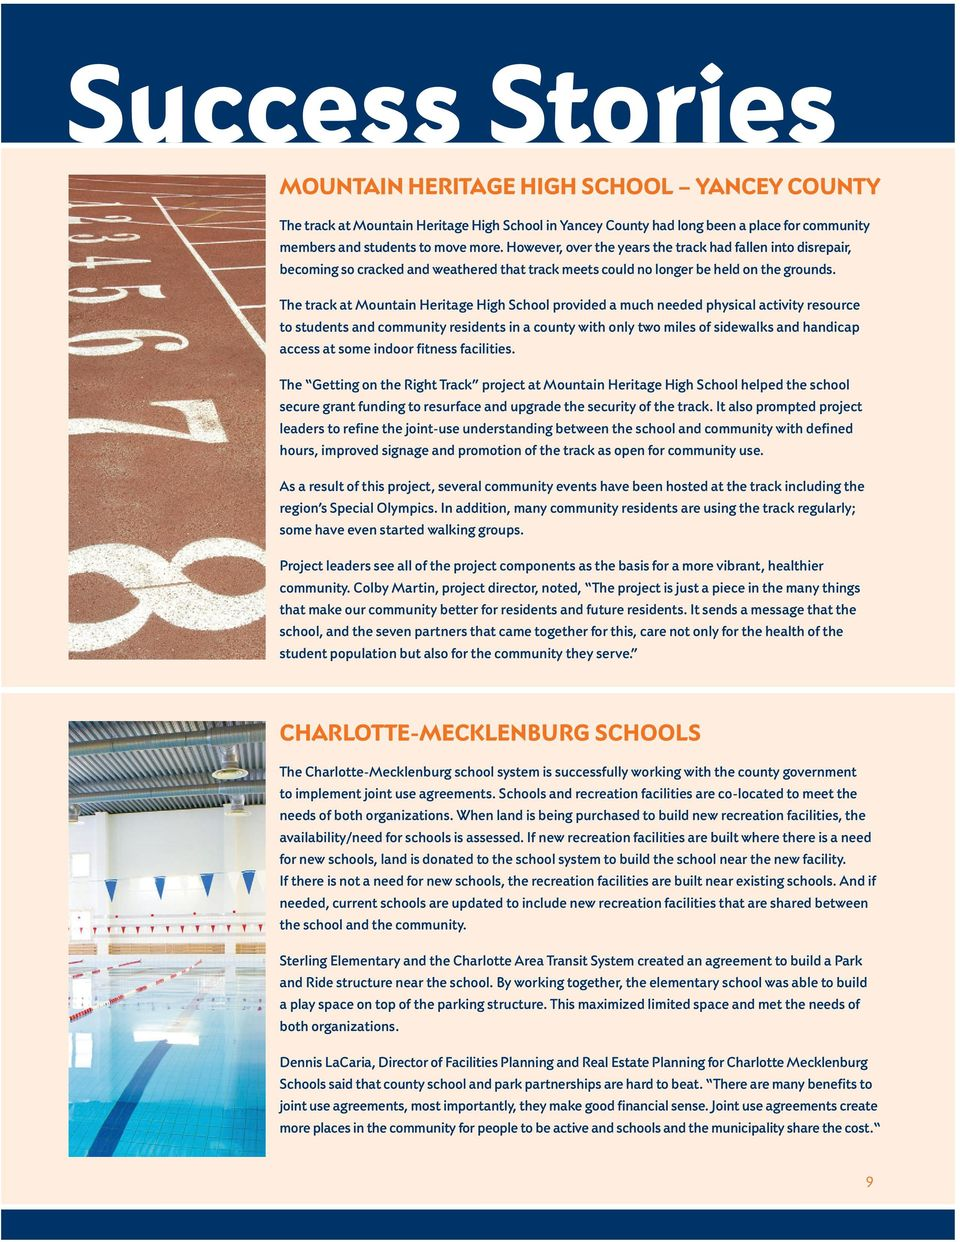 The track at Mountain Heritage High School provided a much needed physical activity resource to students and community residents in a county with only two miles of sidewalks and handicap access at